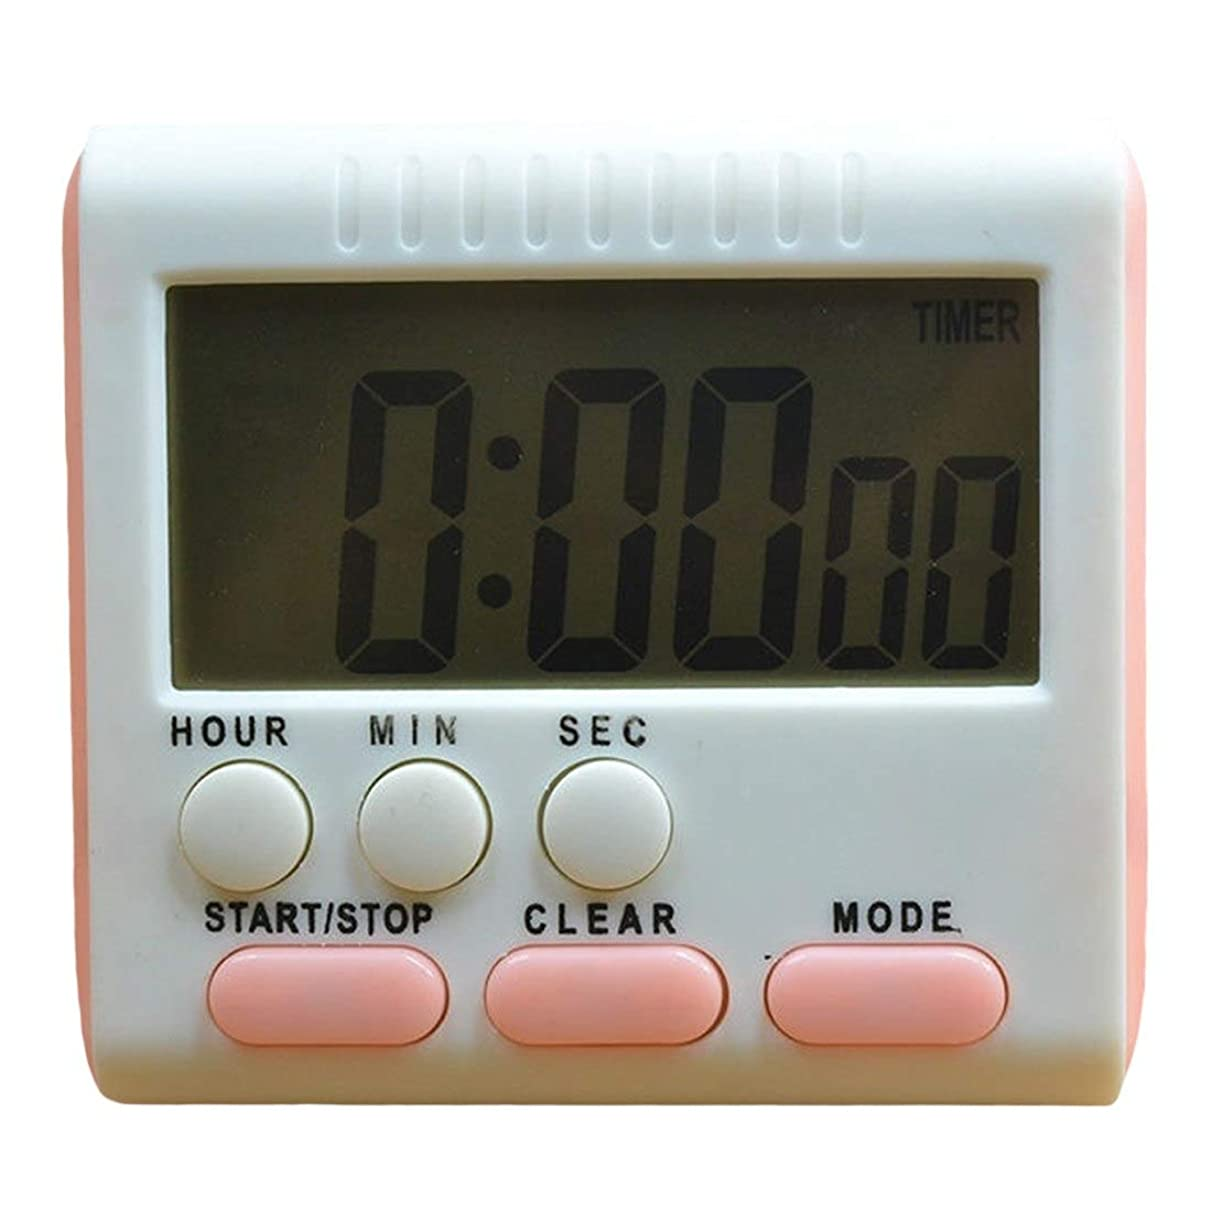 Clock Motorcycle - Magnetic Lcd Digital Screen Timer Alarm Cooking Clock Cook Food - Humidity Duck Indoor Touch Watch Thermometer Radio Meter Motorcycle Wheelbarrow Battery Clock Player Pr